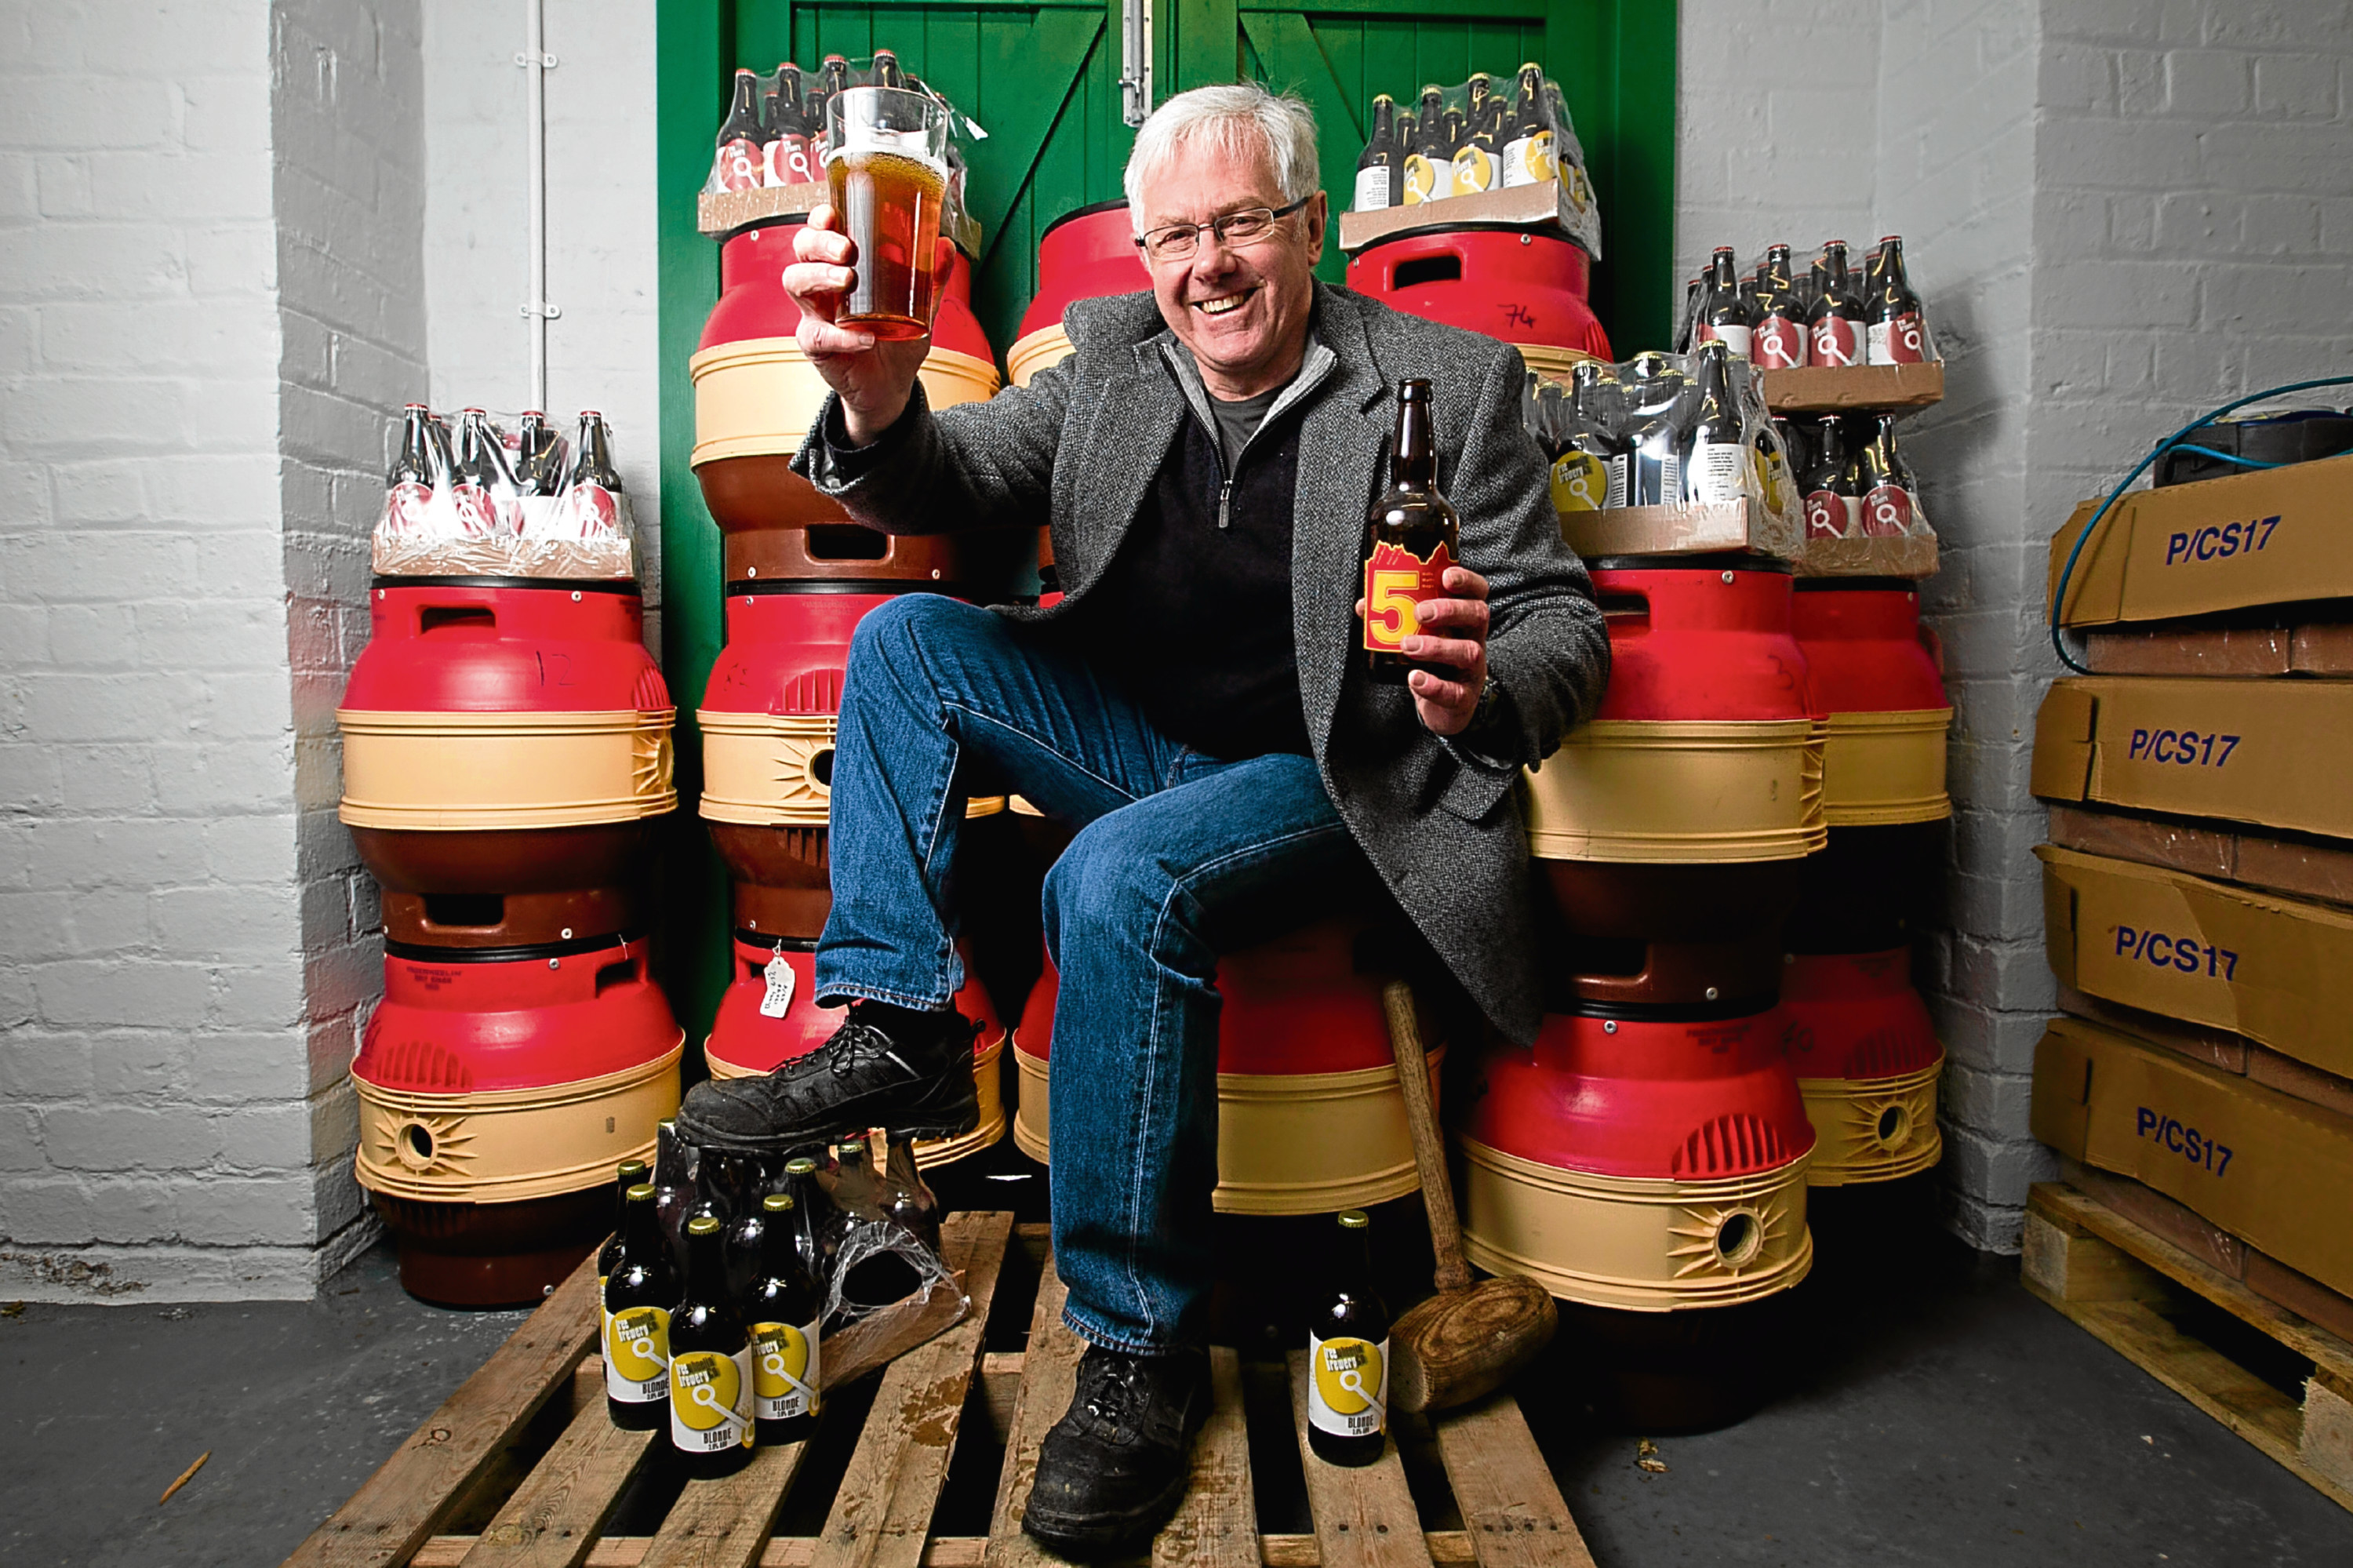 Richard White, who quit his normal office job to start his own beer brewery - The Freewheelin' Brewery Co. (Andrew Cawley)